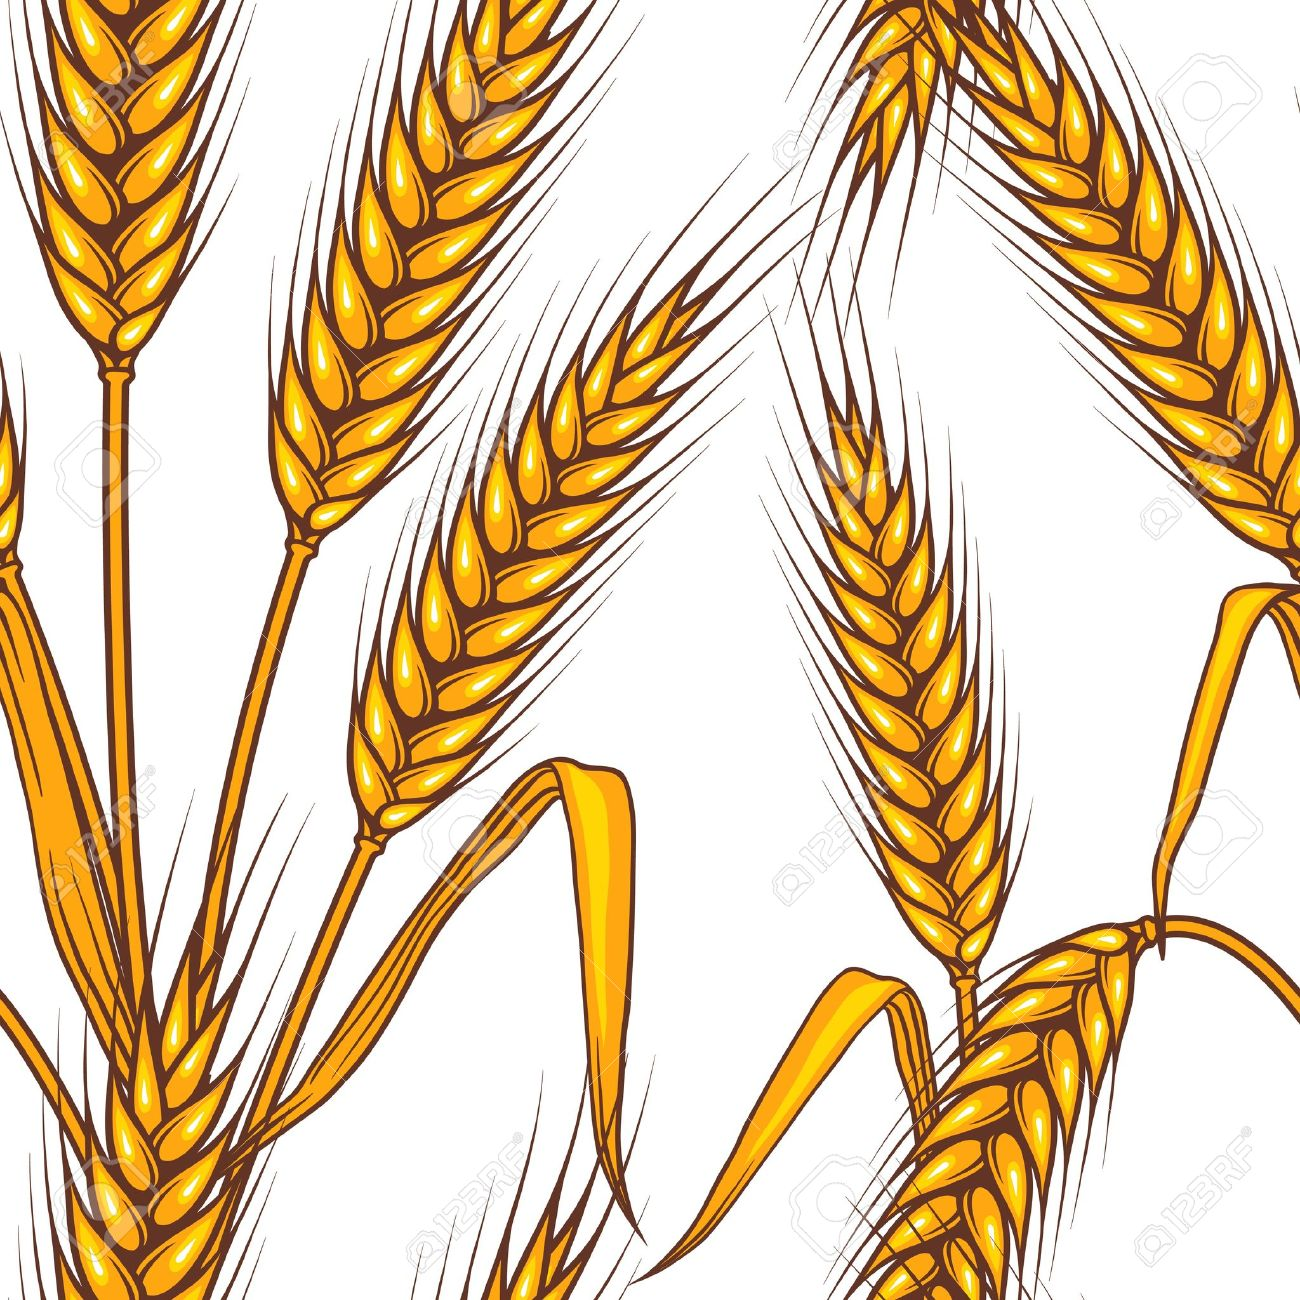 Grain clipart jpg freeuse library 82+ Grain Clipart | ClipartLook jpg freeuse library